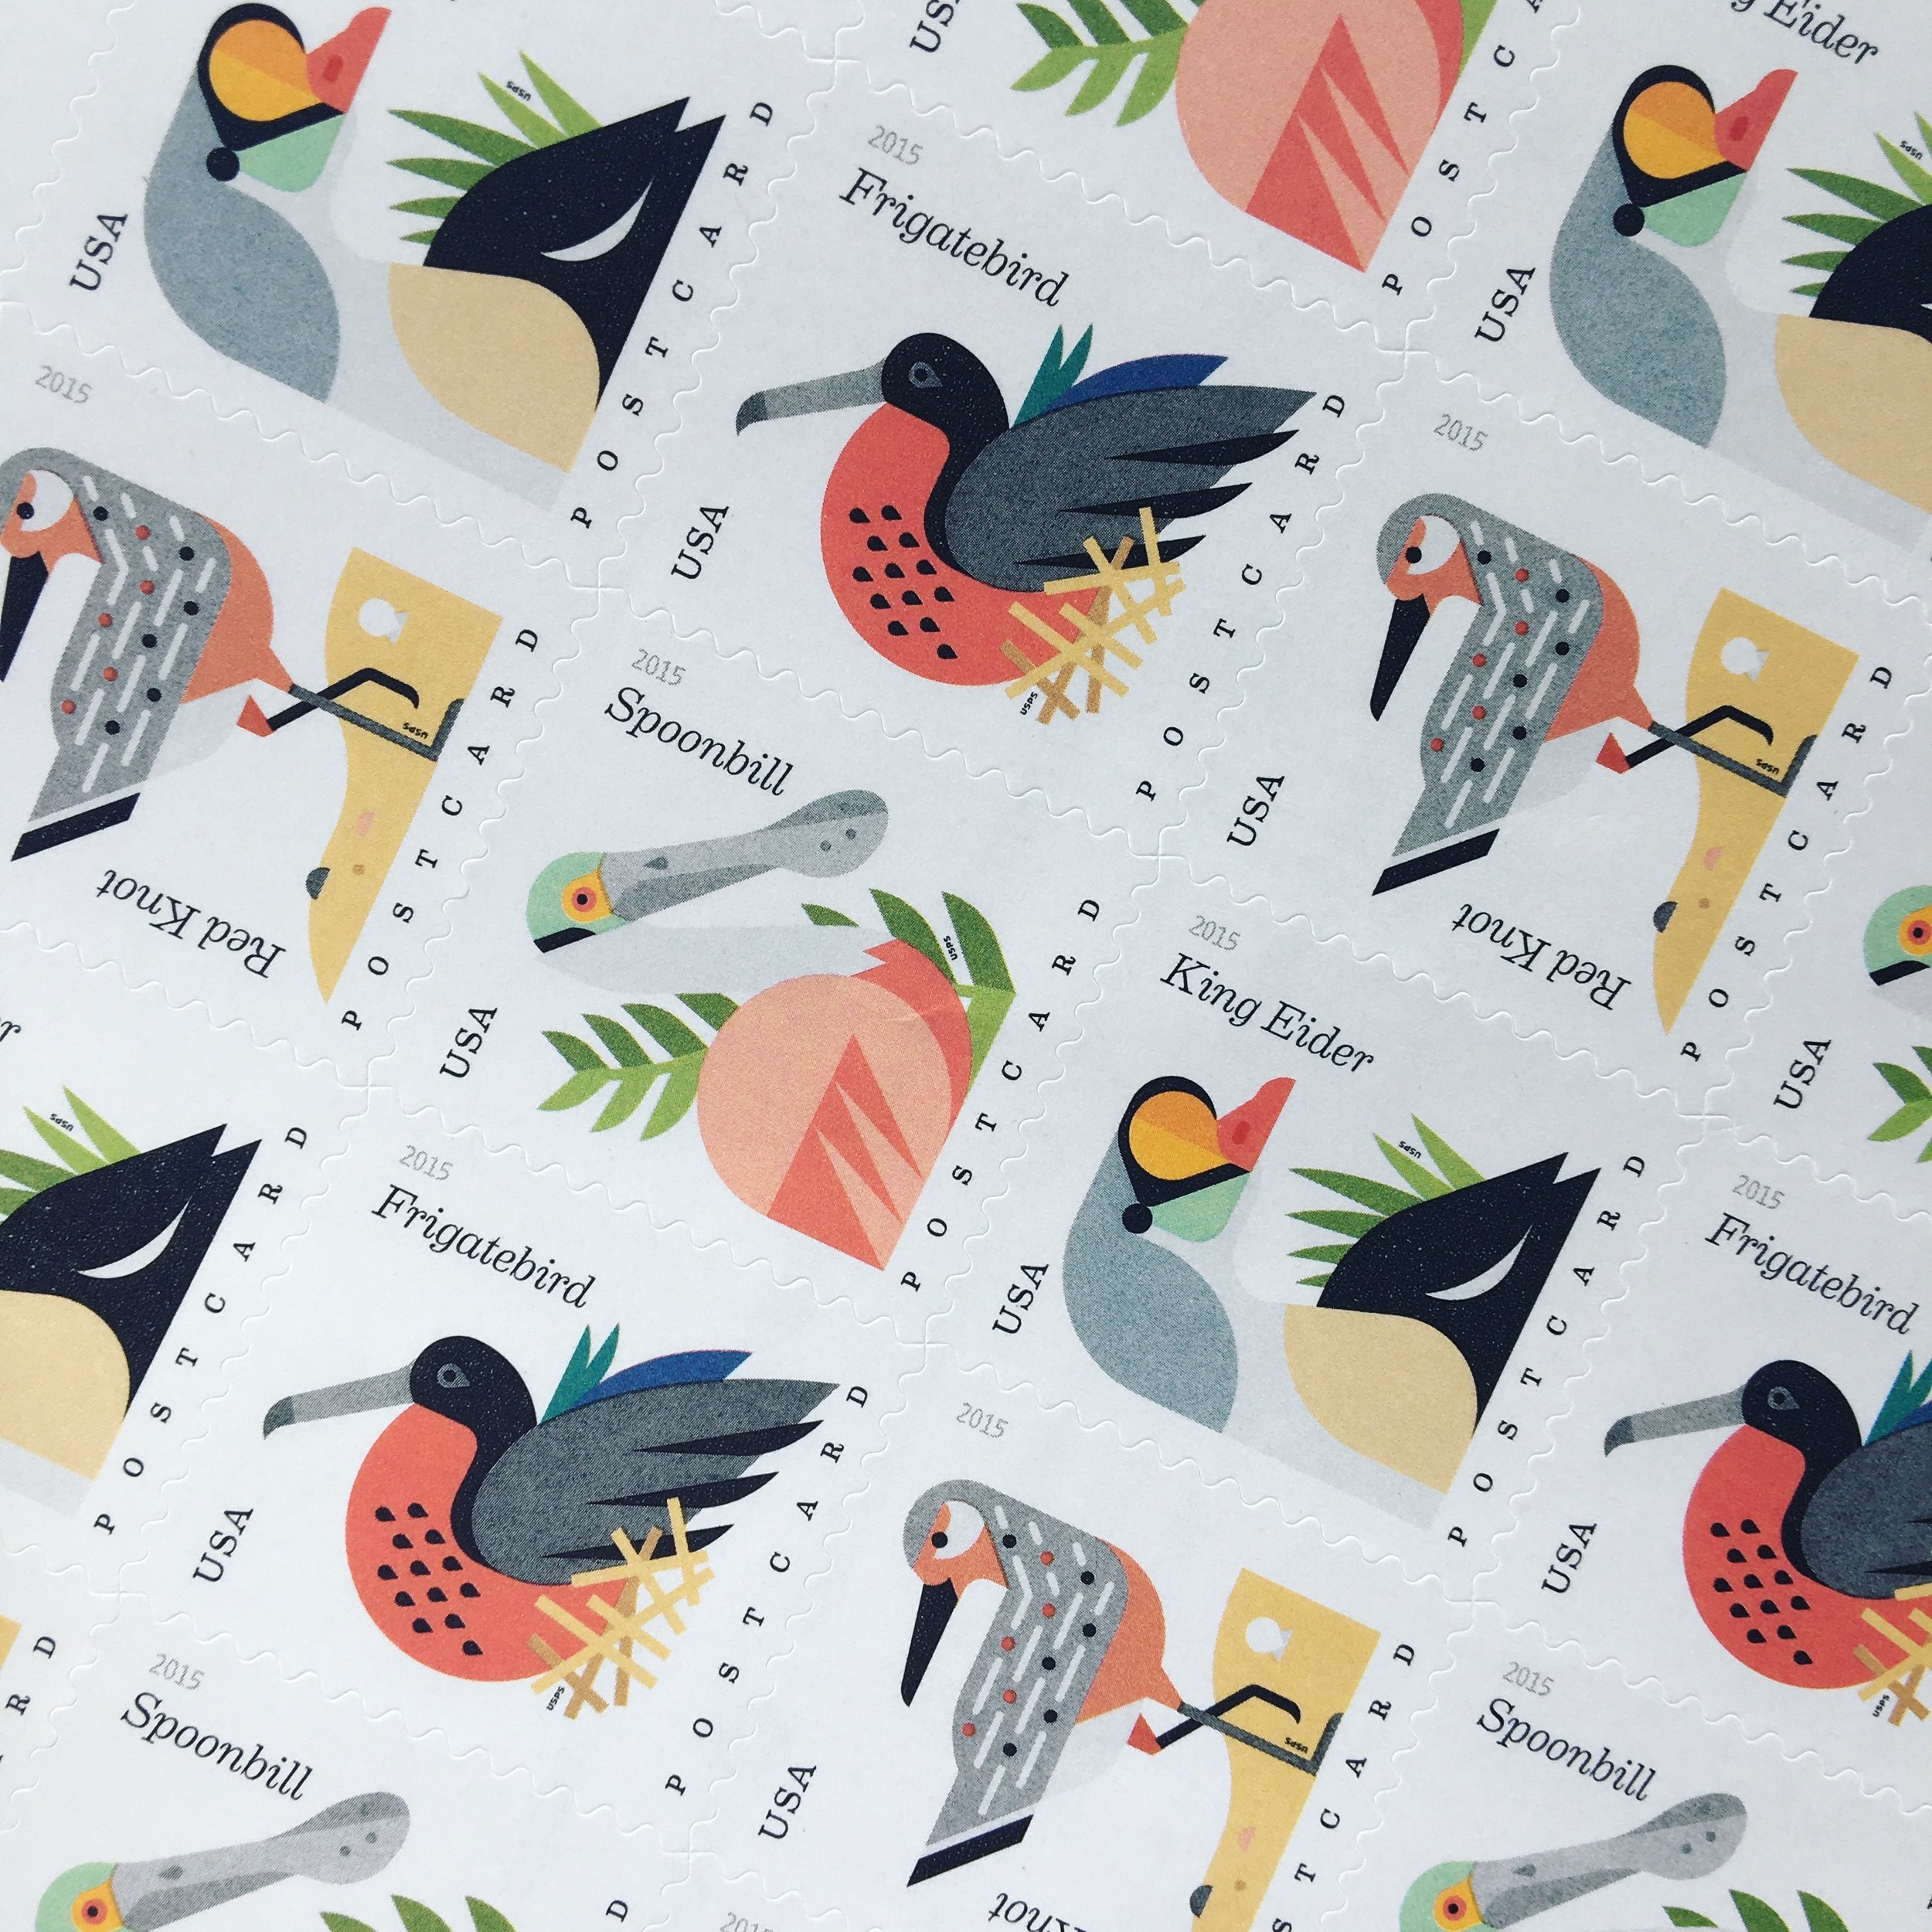 Beautiful Charley Harper- Postcard Edition Stamps